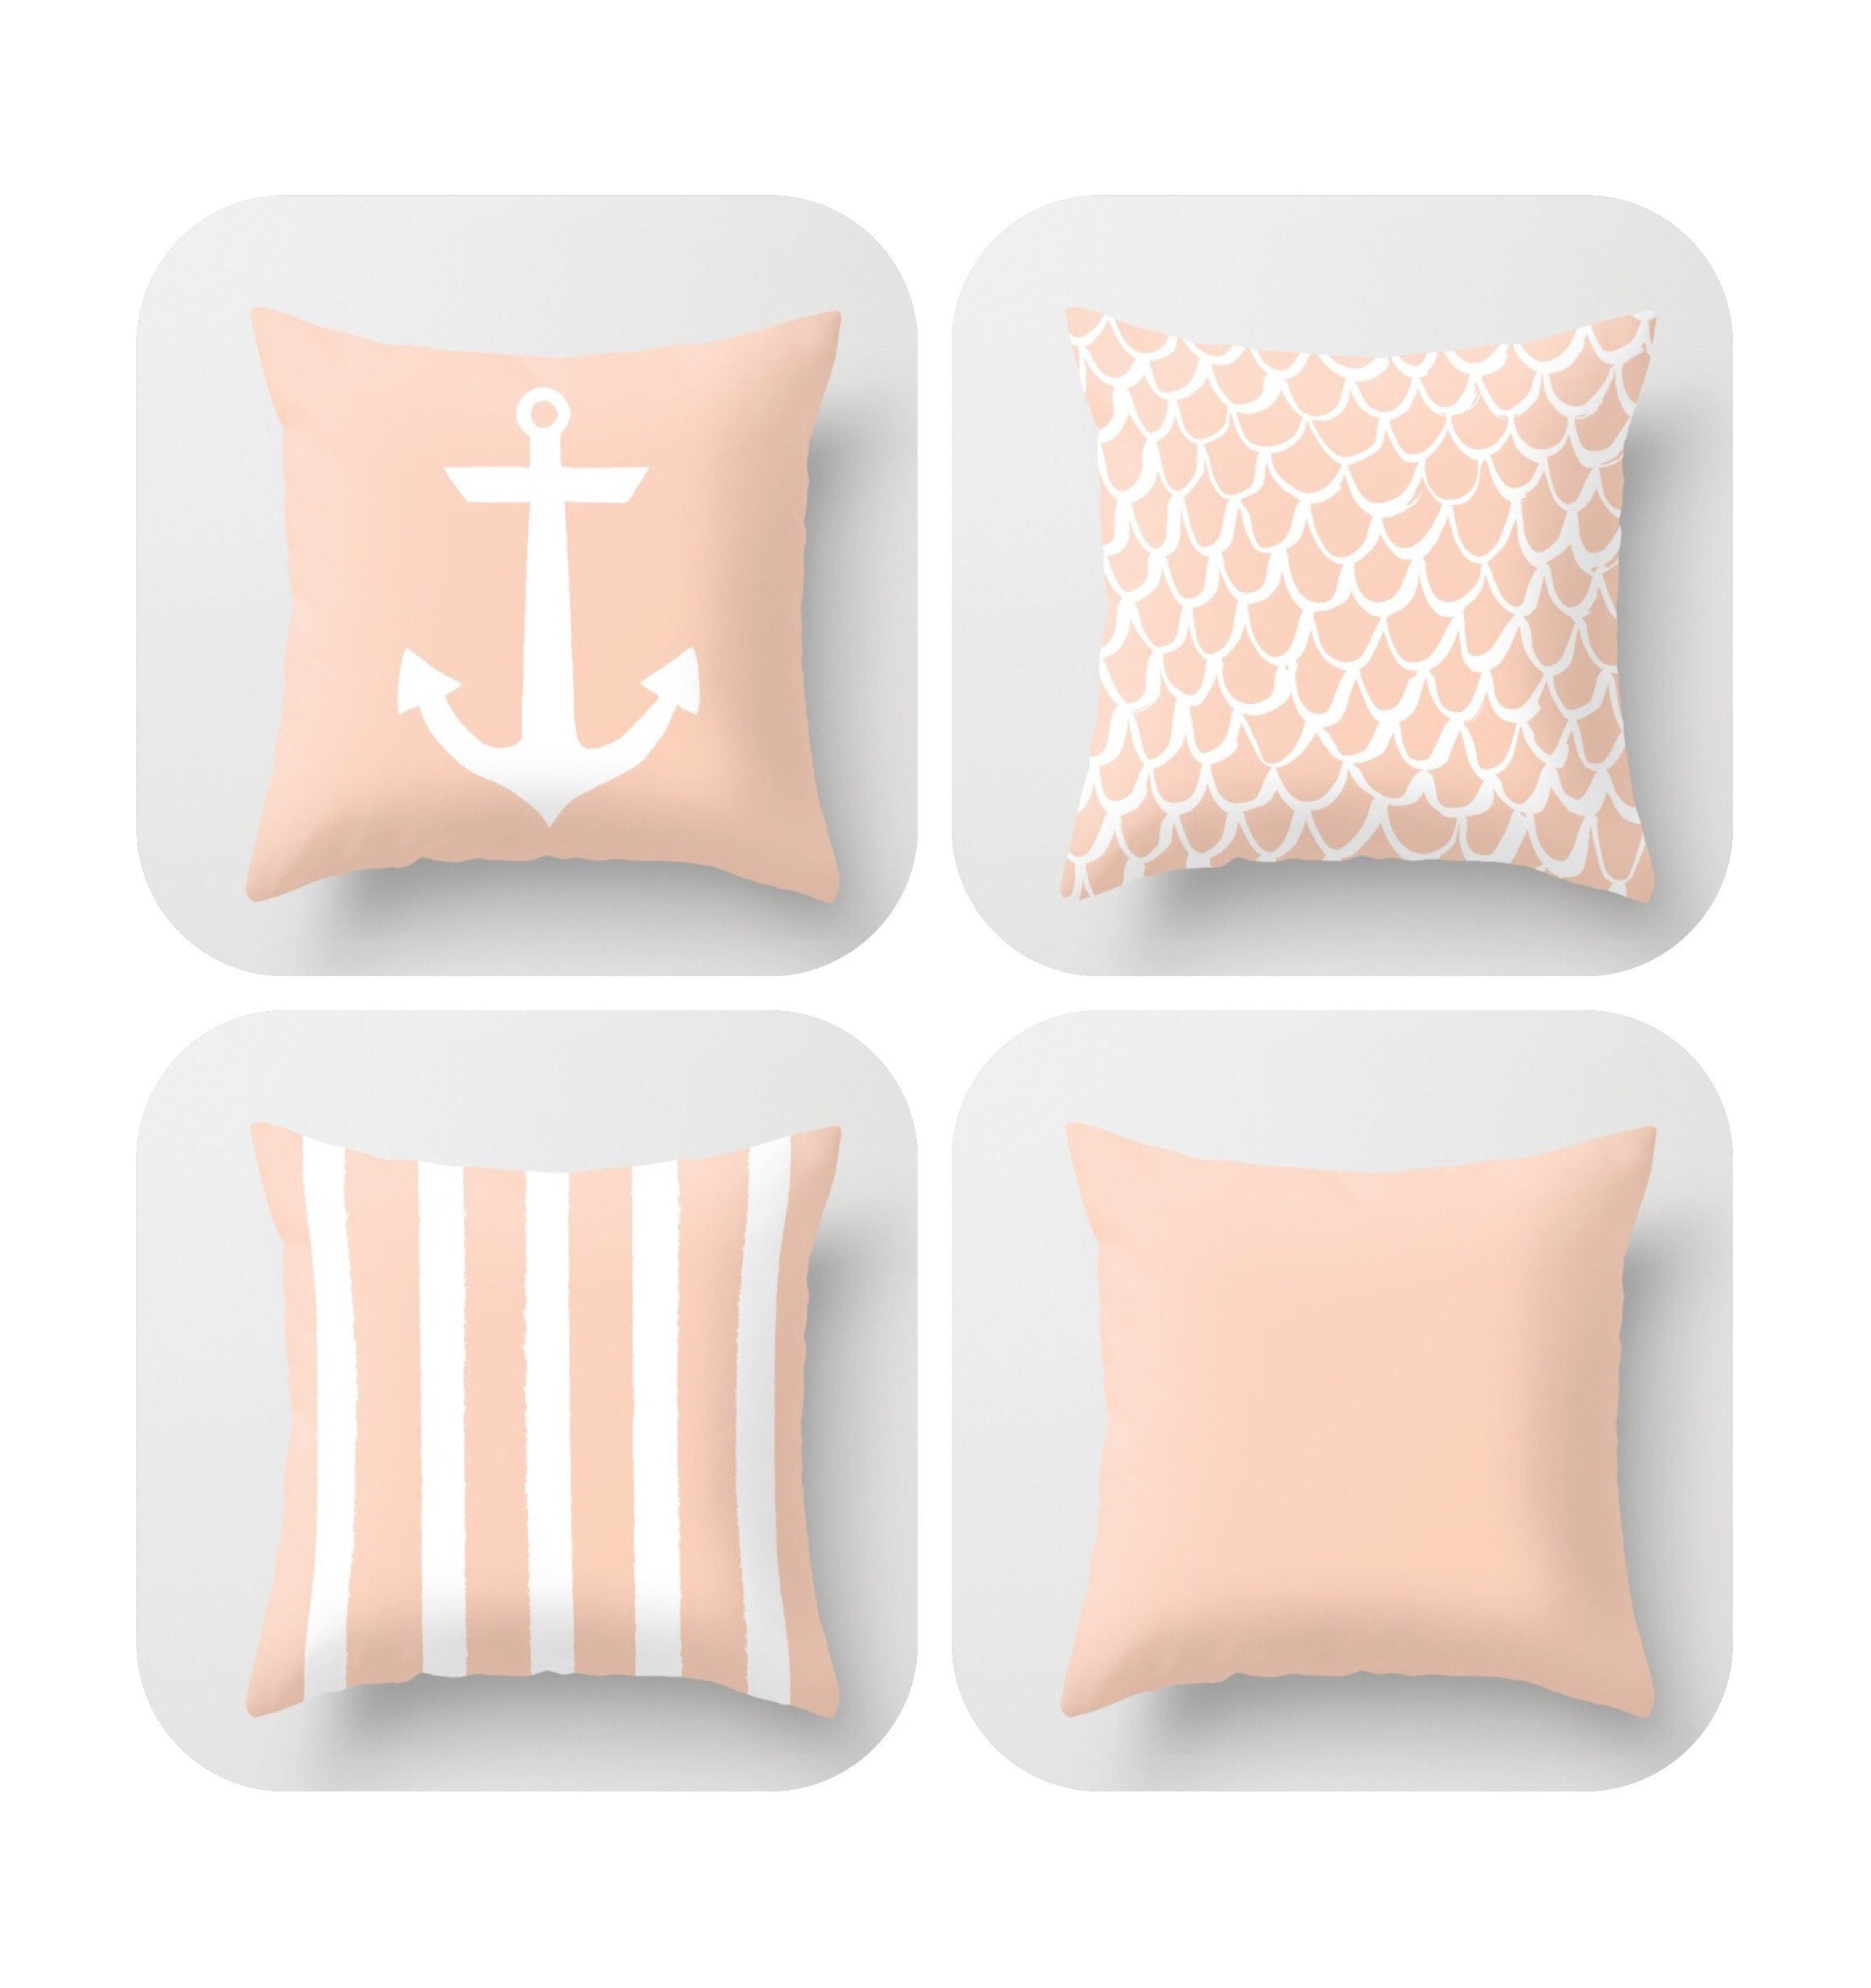 sophia pink listing pillow pale ca il lumbar throw forman zoom fullxfull pillows cushion kate cover